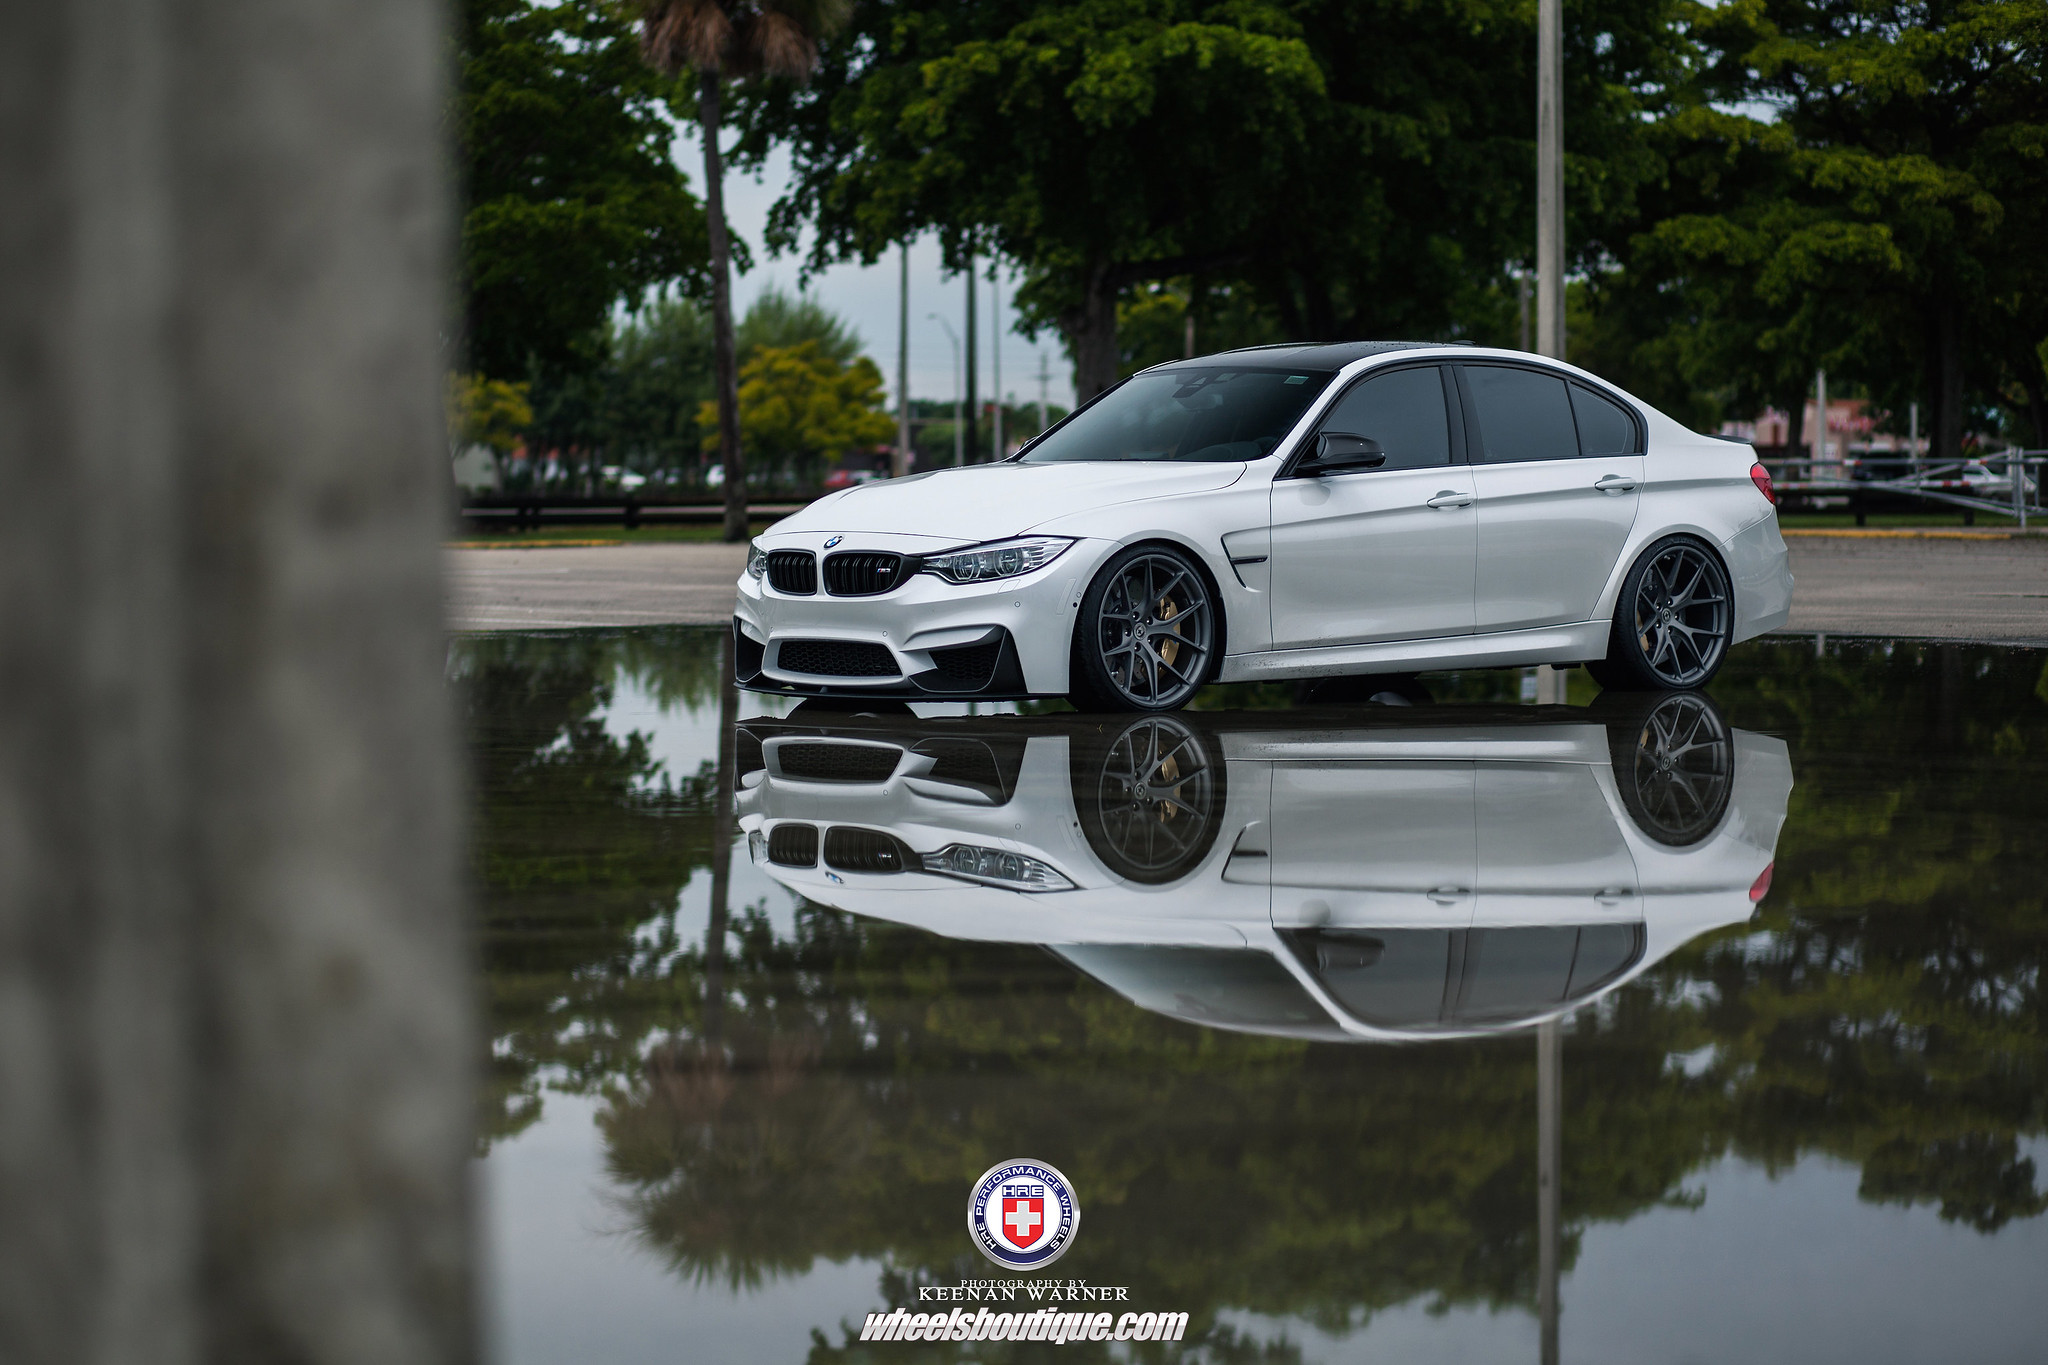 The official hre wheels photo gallery for bmw f80 f82 m3 and m4 page 7